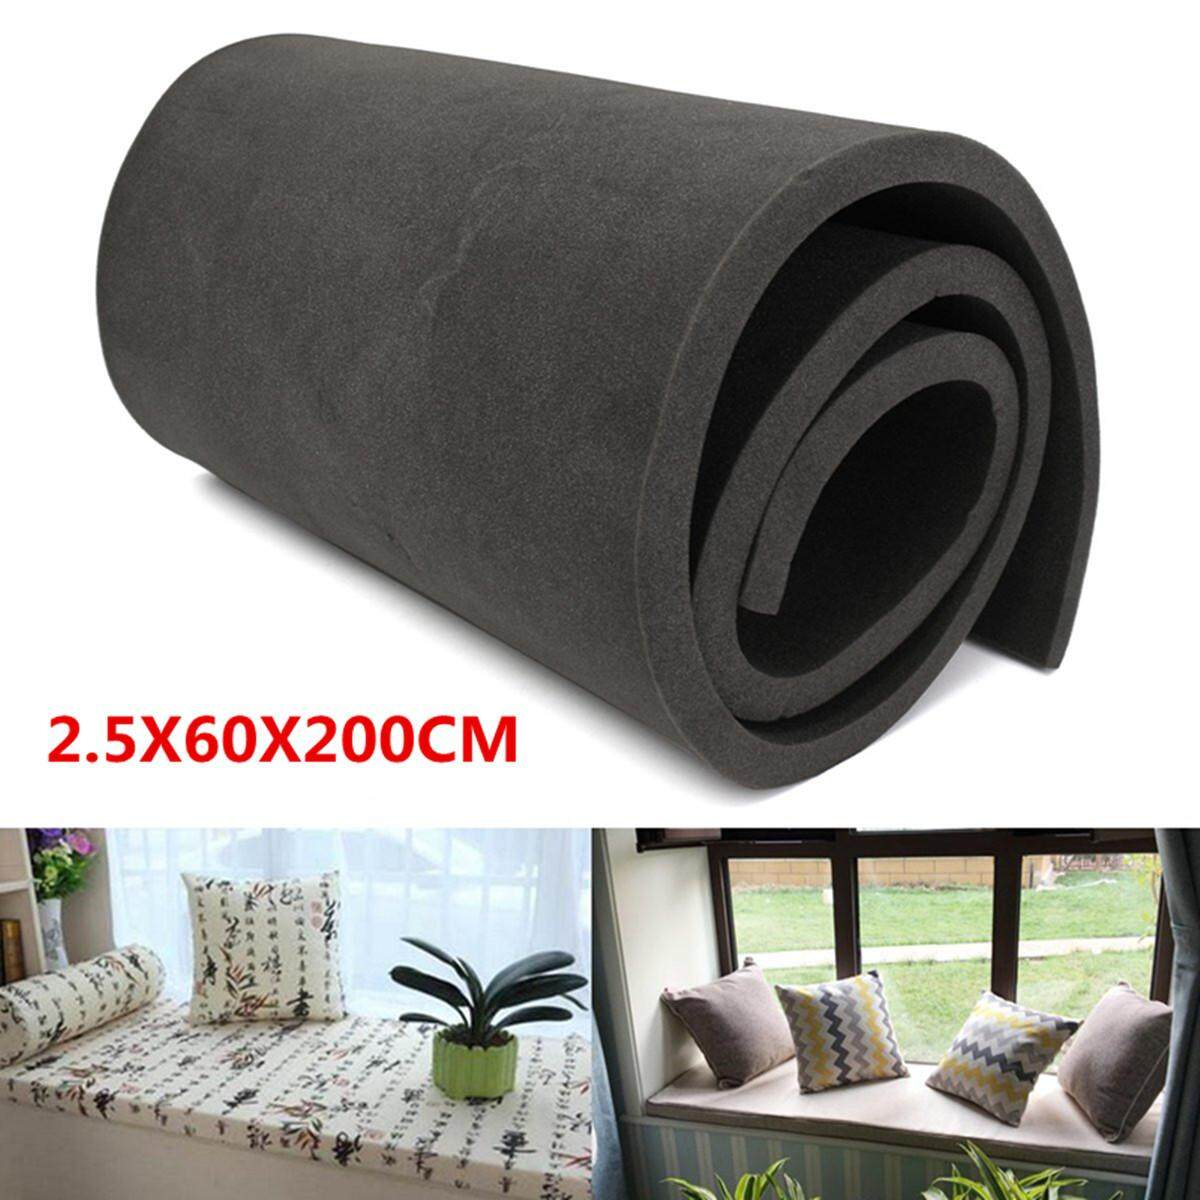 Black High Density Seat Firm Polyurethane Foam Rubber Replacement 2.5X60X200CM